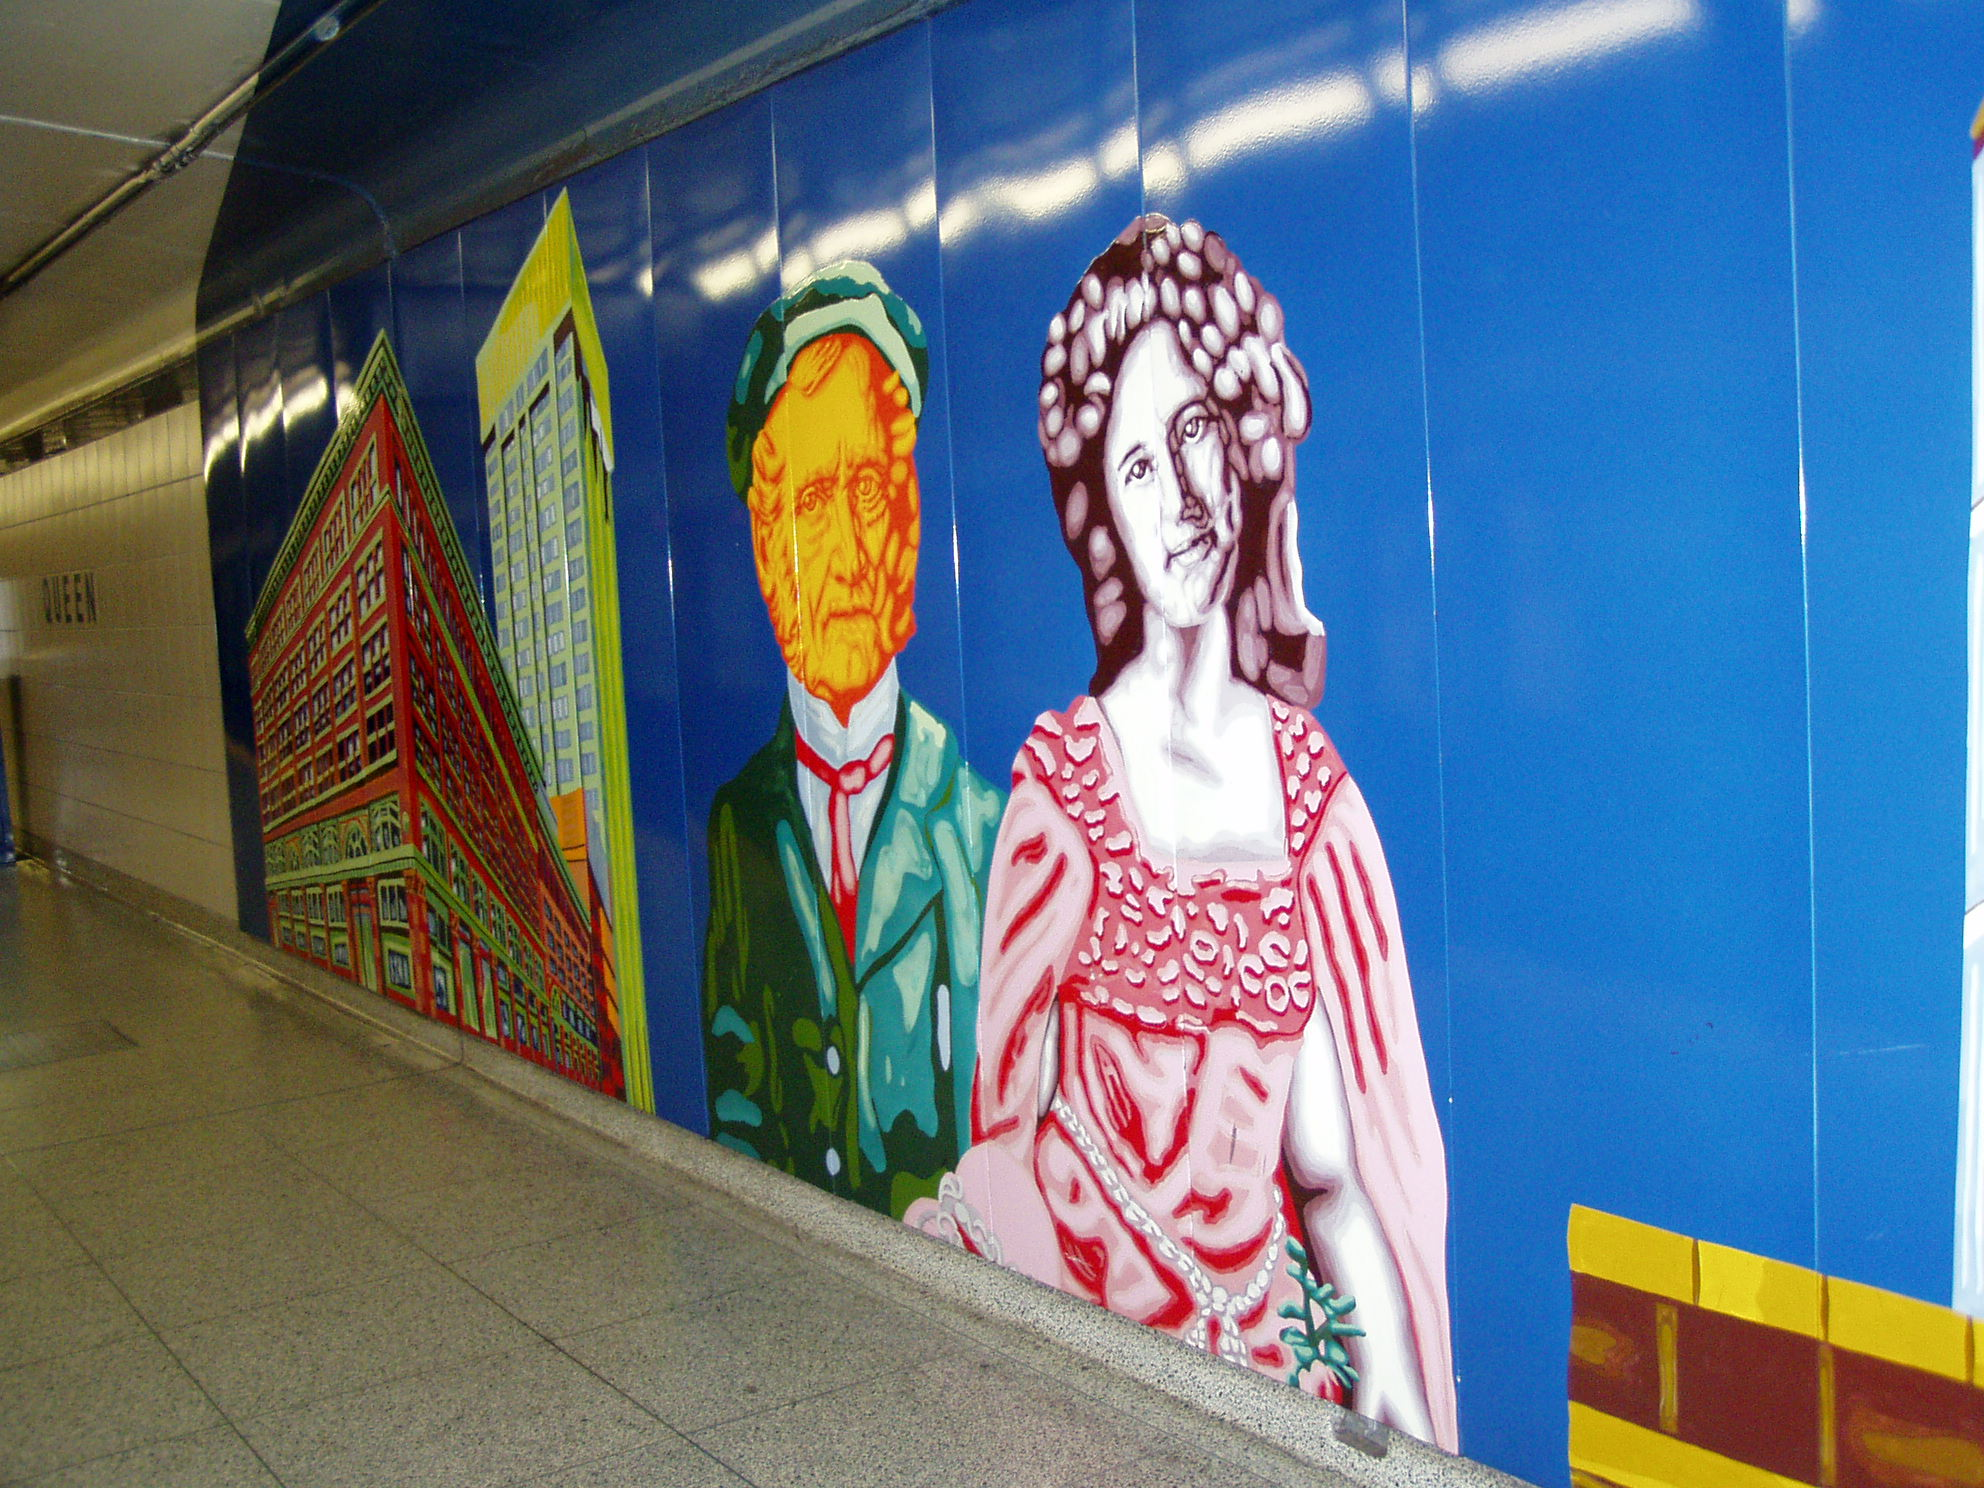 WLM mural - another view